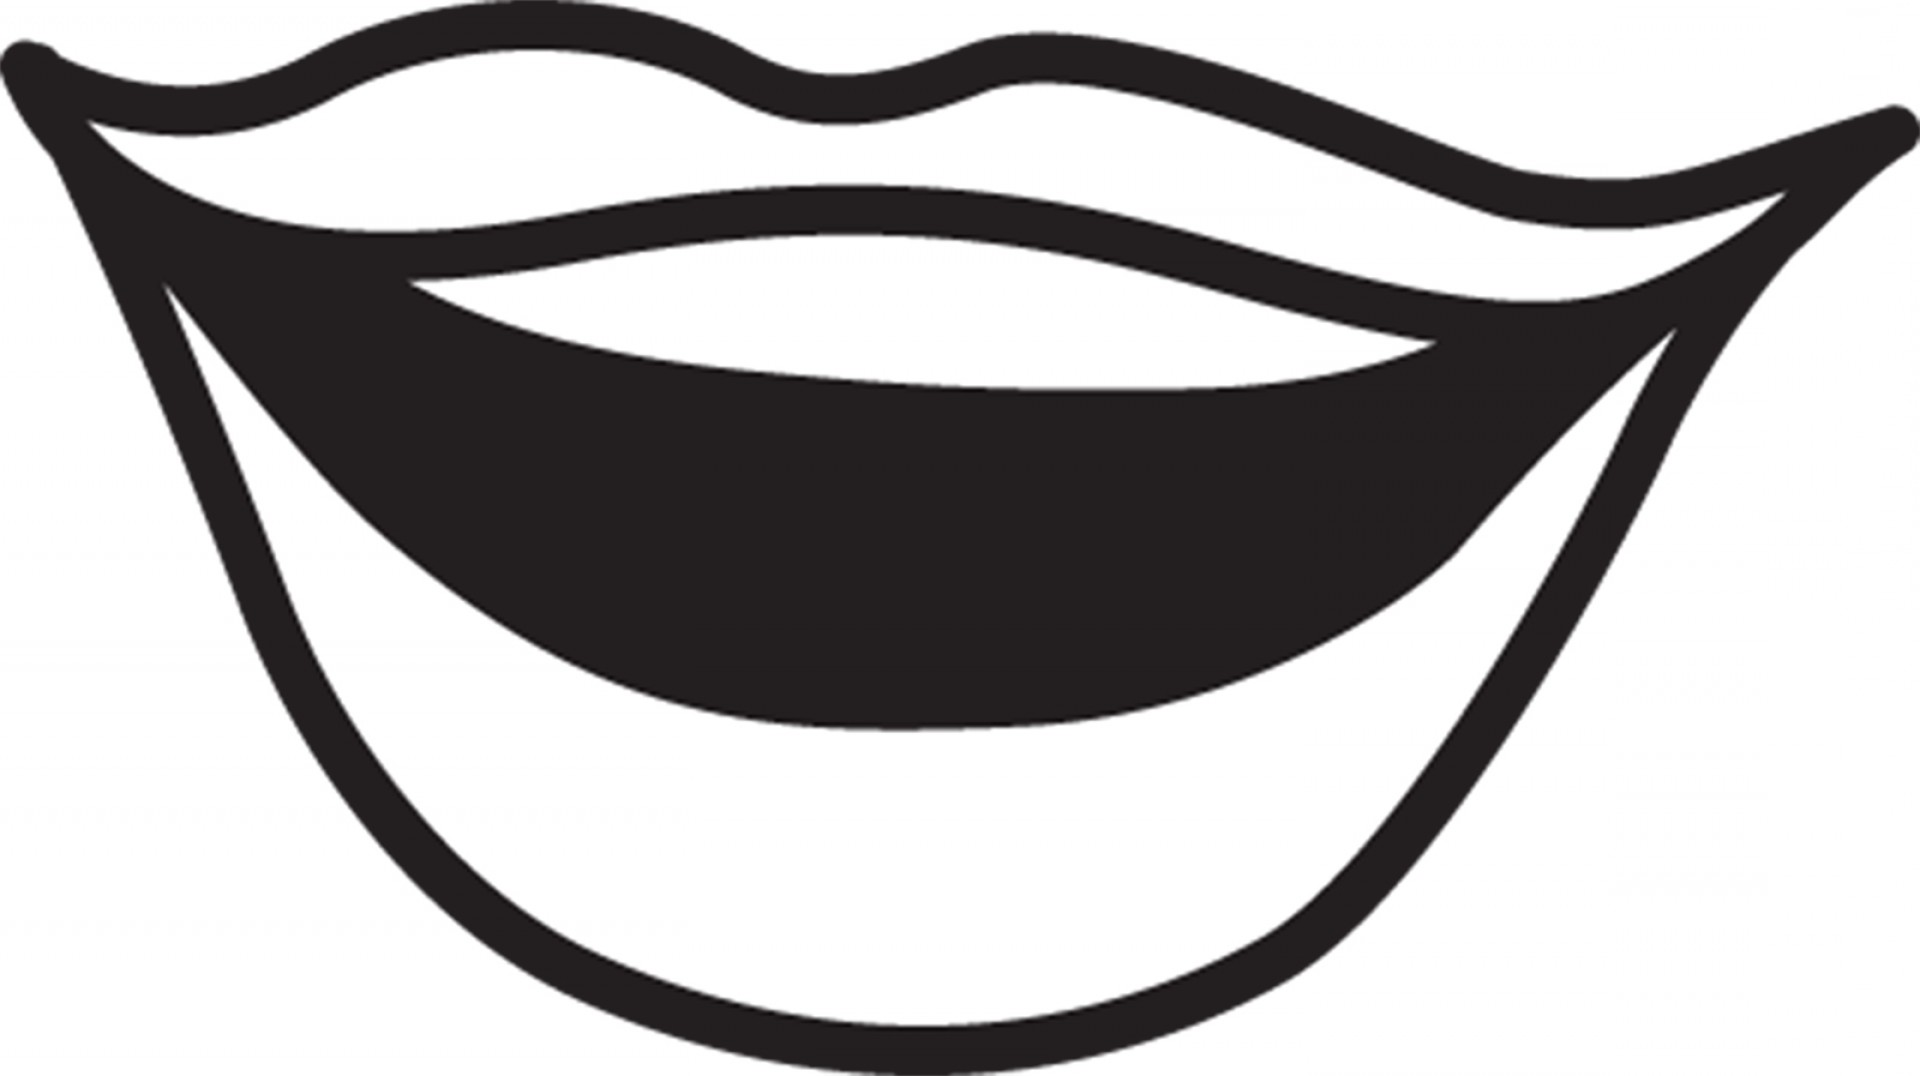 Exclusive Vector Art Black And White Lips Illustration.